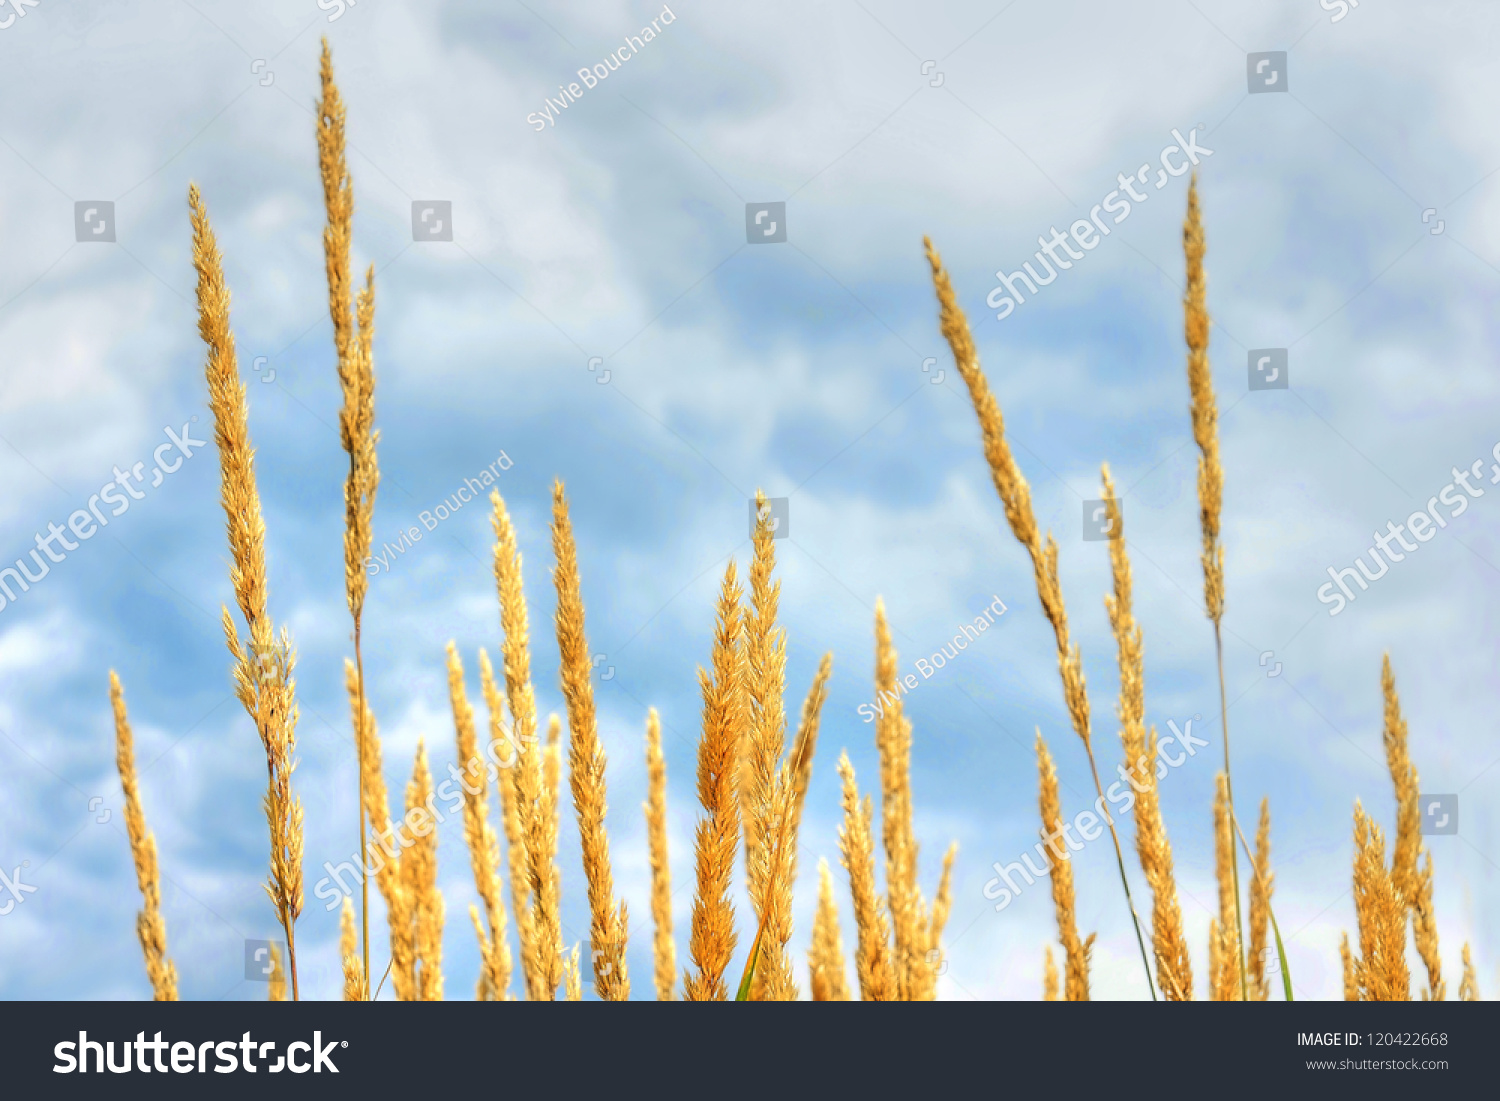 Dramatic hdr rendering cute herbaceous plant stock photo 100 legal dramatic hdr rendering of cute herbaceous plant and cloudy blue sky fun nature background thecheapjerseys Gallery